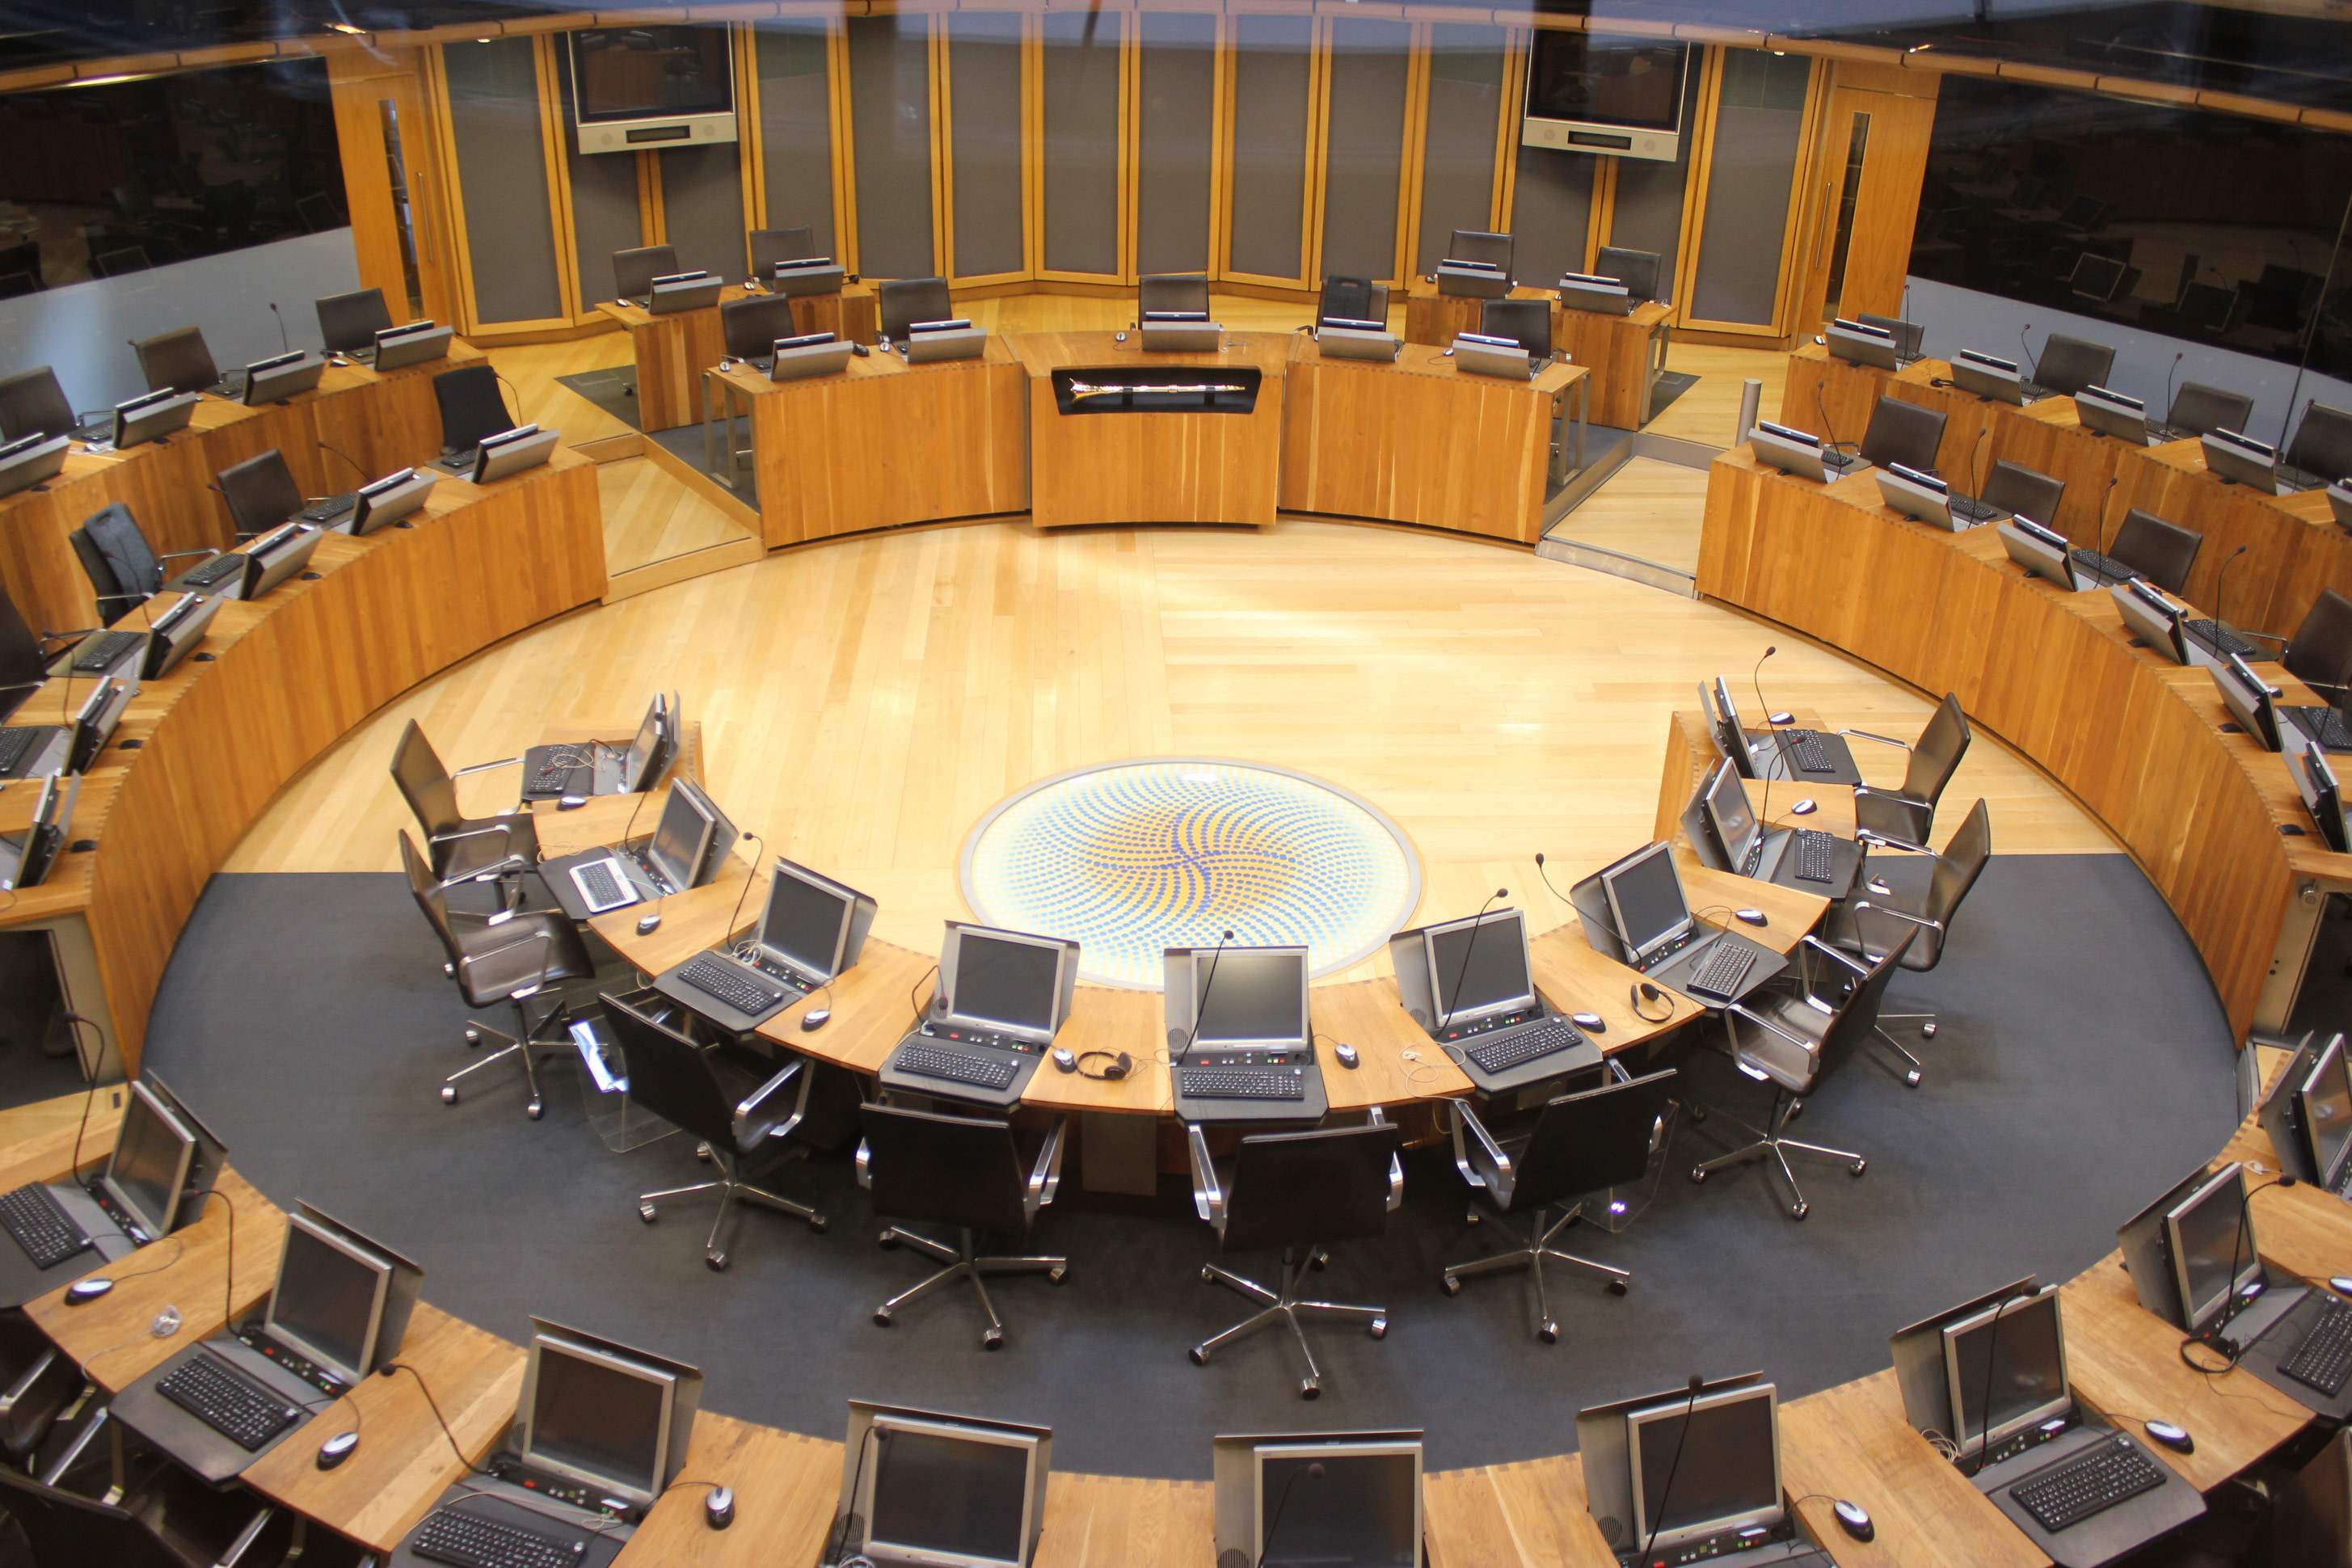 The Experiences And Development Of New Welsh Assembly Members